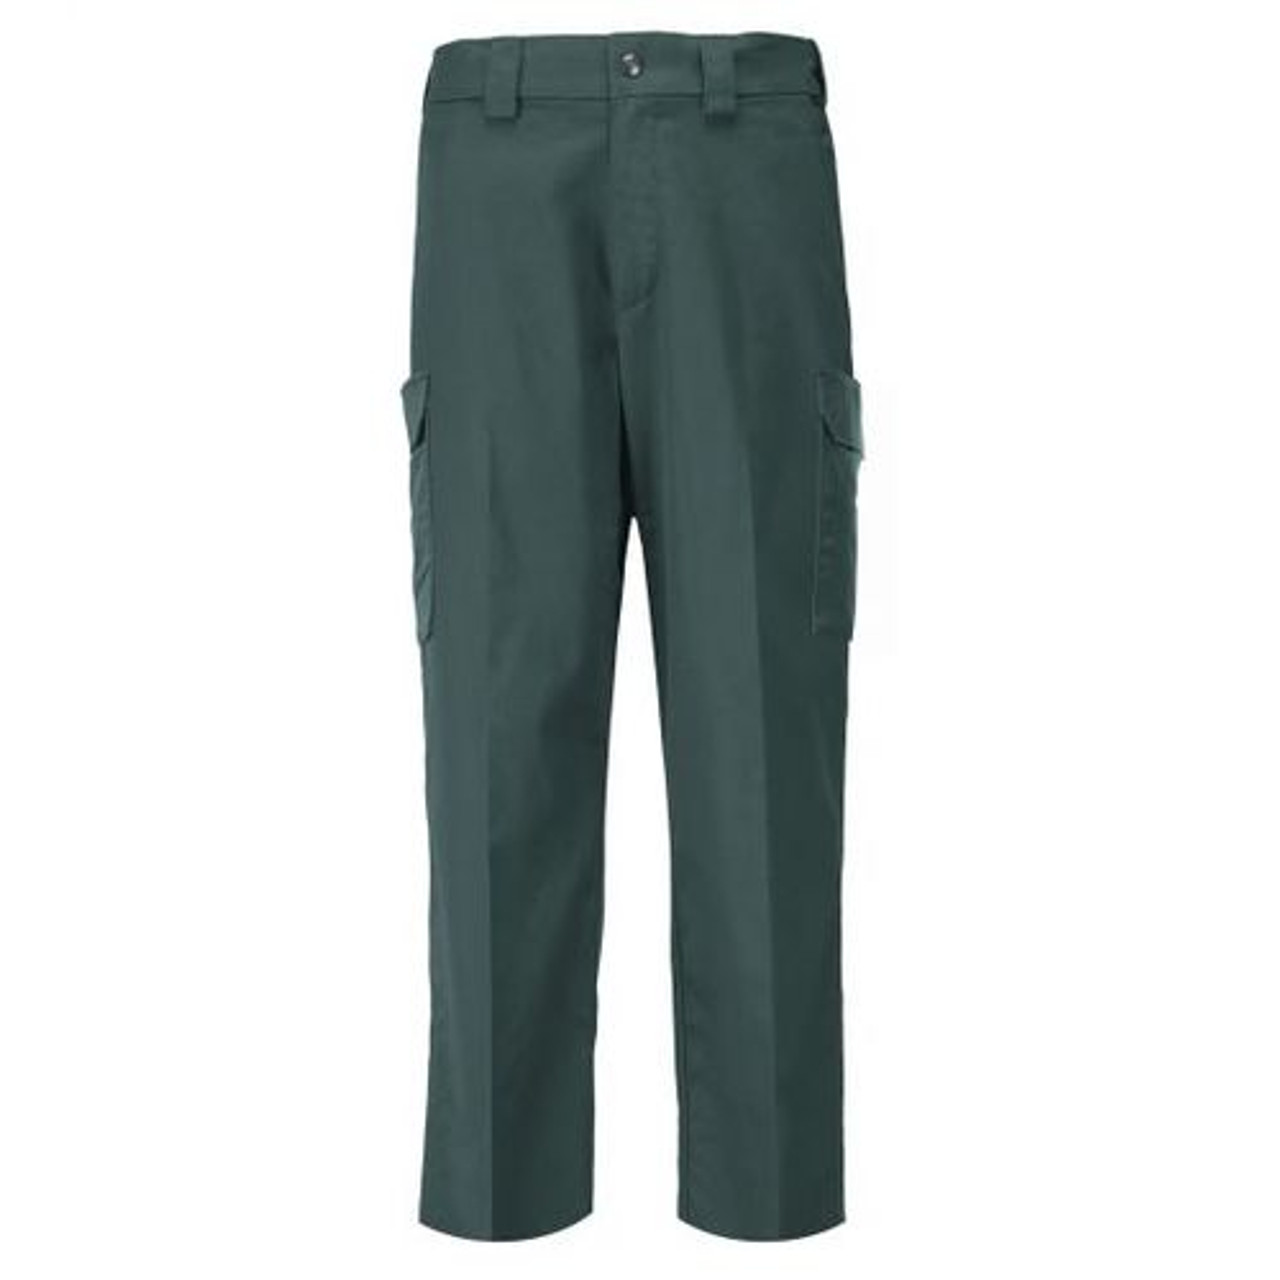 5.11 Tactical 74371 Taclite PDU Cargo Class-B Uniform Pants, Classic/Straight Fit, Adjustable Waistband, Polyester/Cotton, Available in Brown, Midnight Navy, or Spruce Green